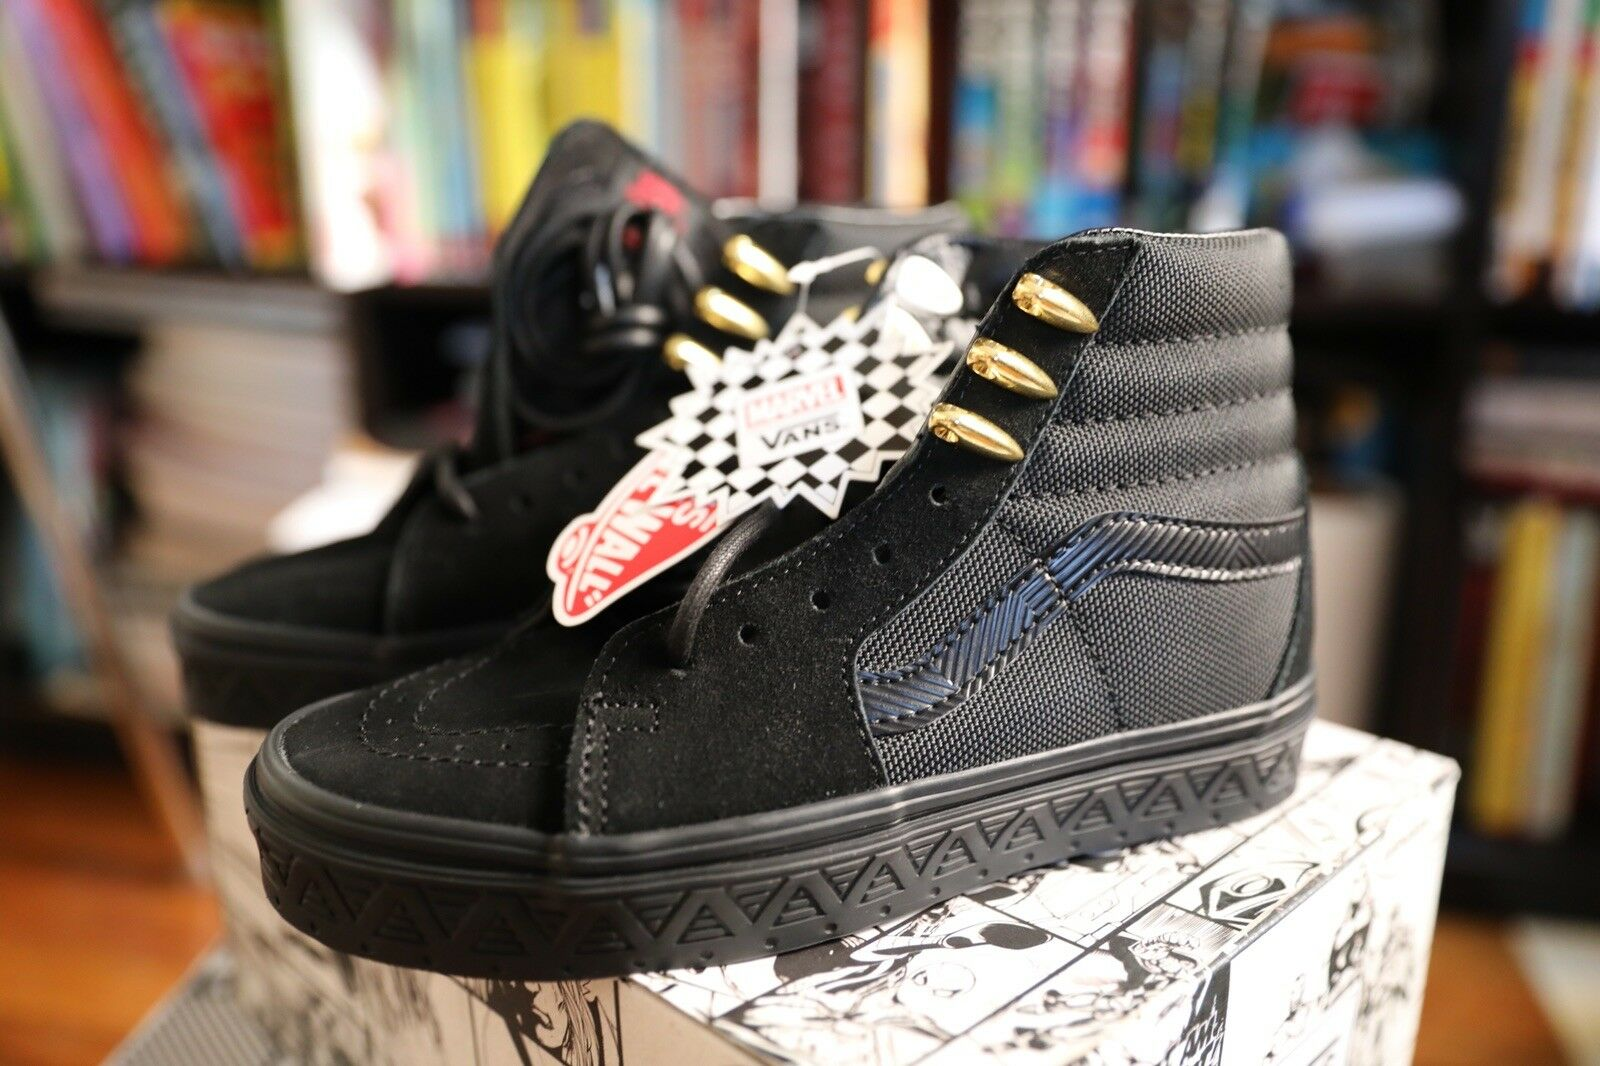 Marvel Vans Black Panther Sk8 Size 4.5 BOYS. Women's 6.0